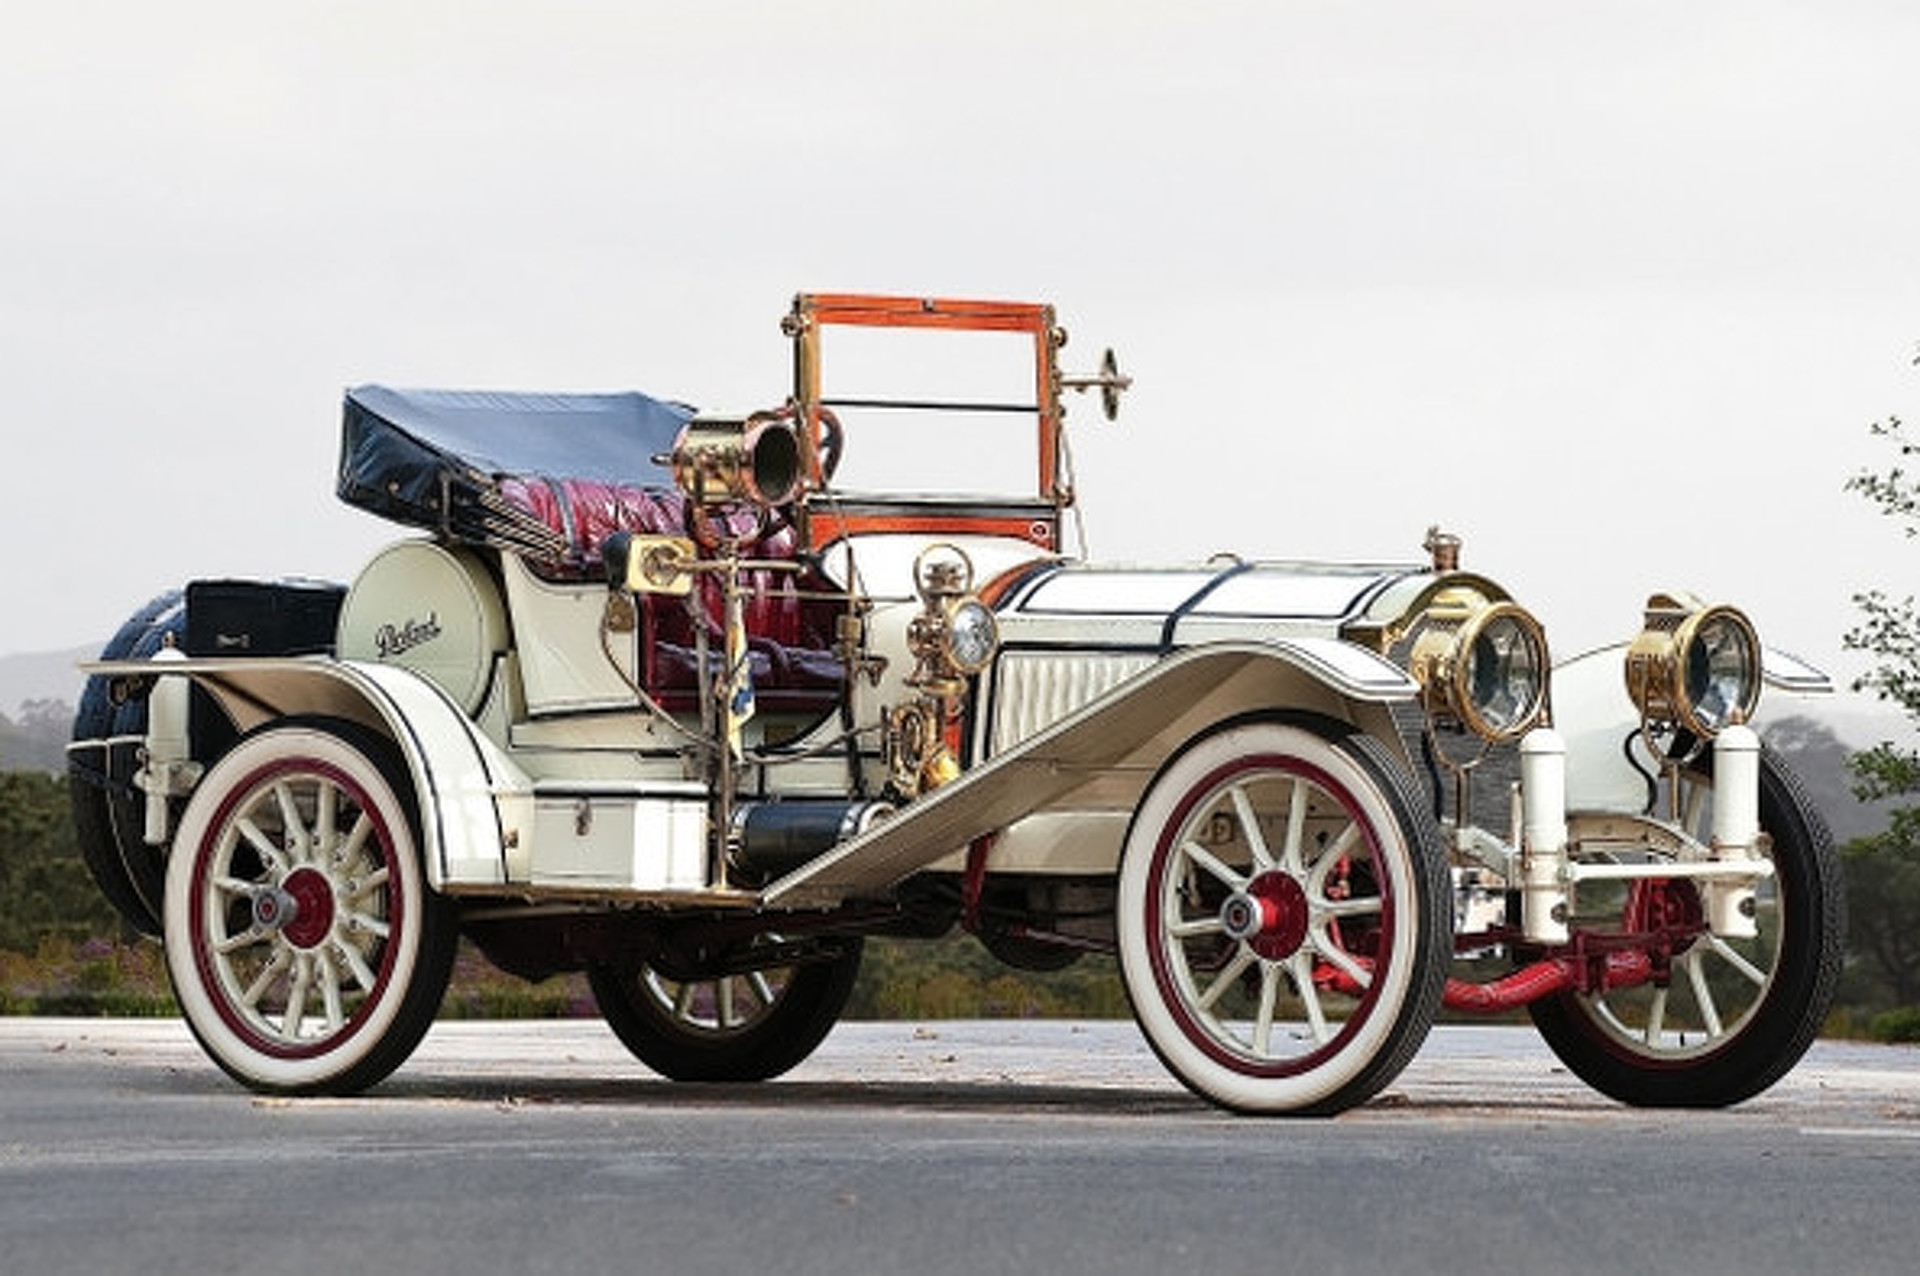 Know Your Niche: The Brass Era of Automobiles